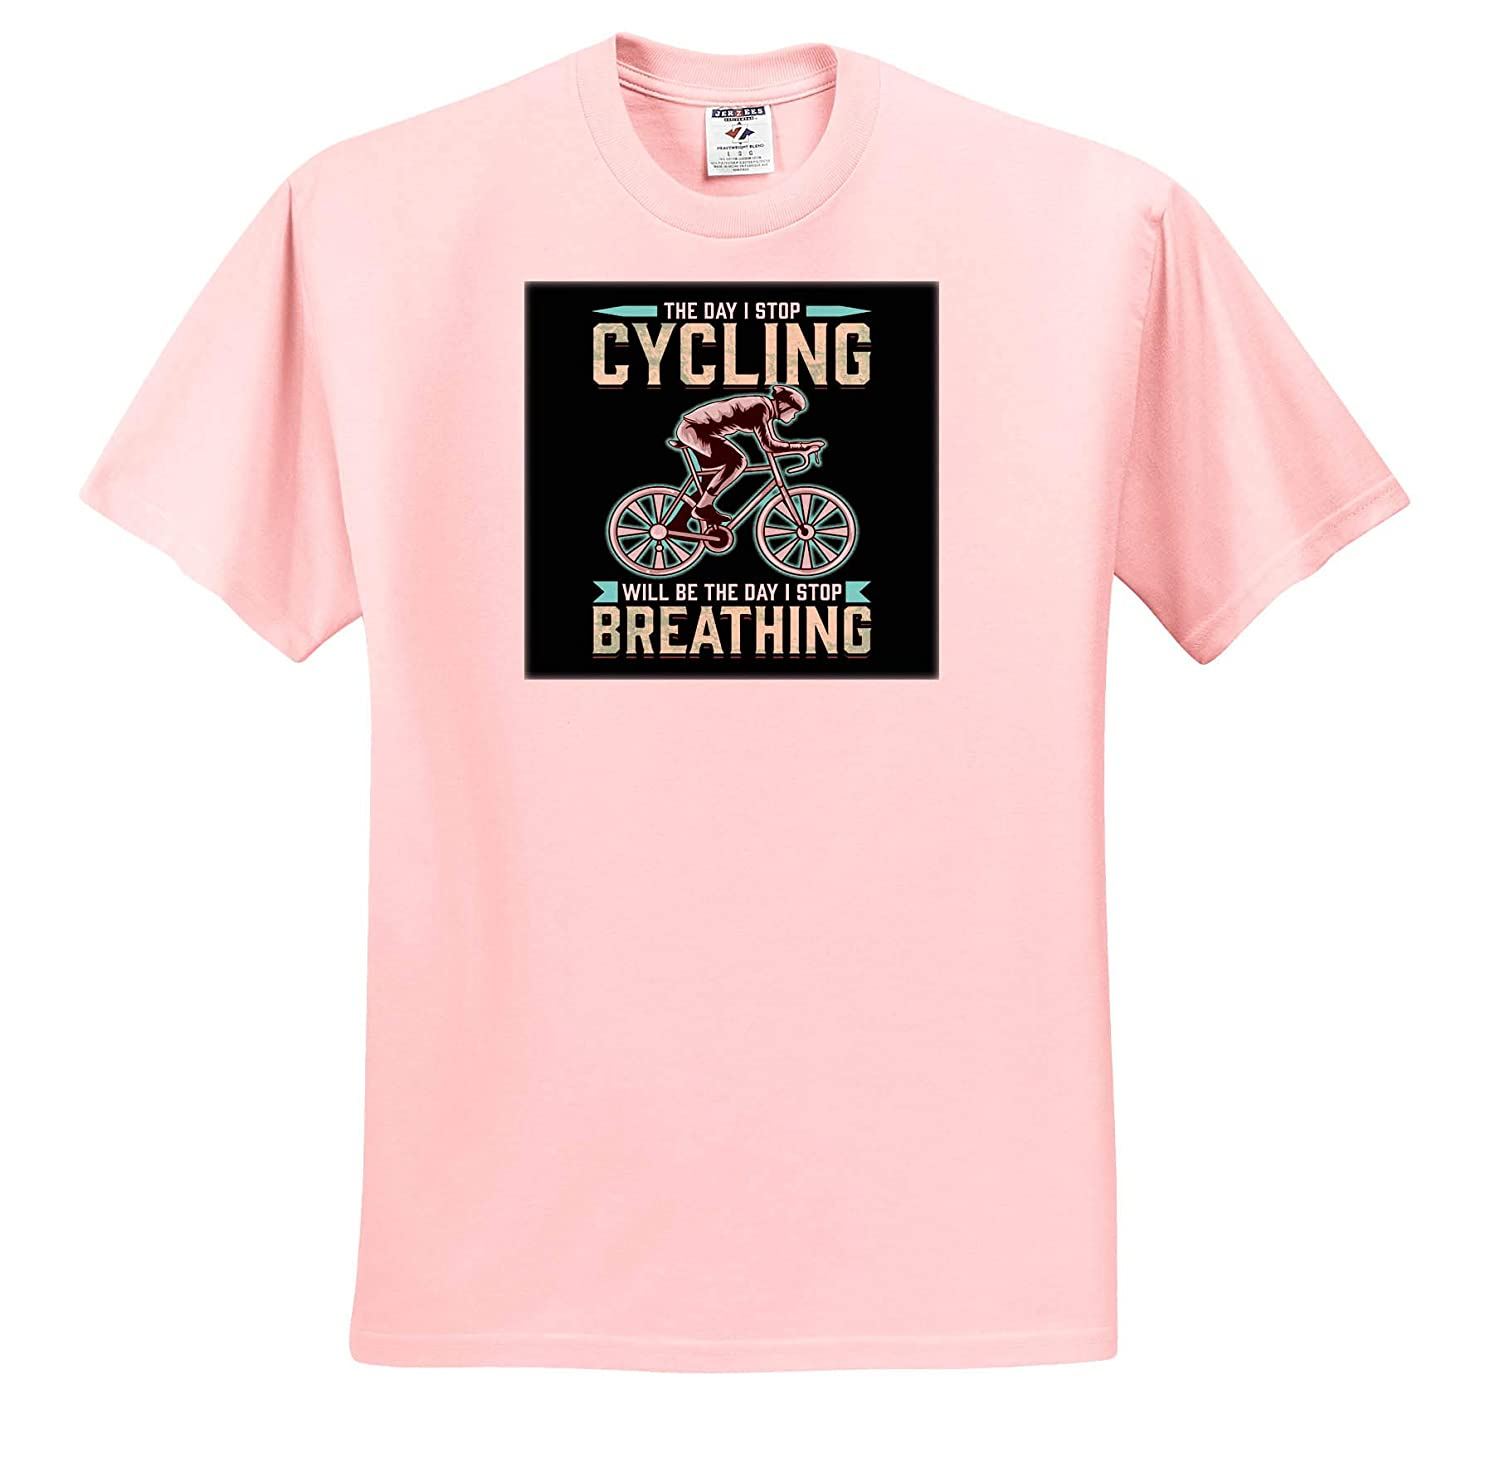 3dRose Sven Herkenrath Sport The Day i Stop Cycling Will Be The Day I Stop Breathing ts/_314120 Adult T-Shirt XL